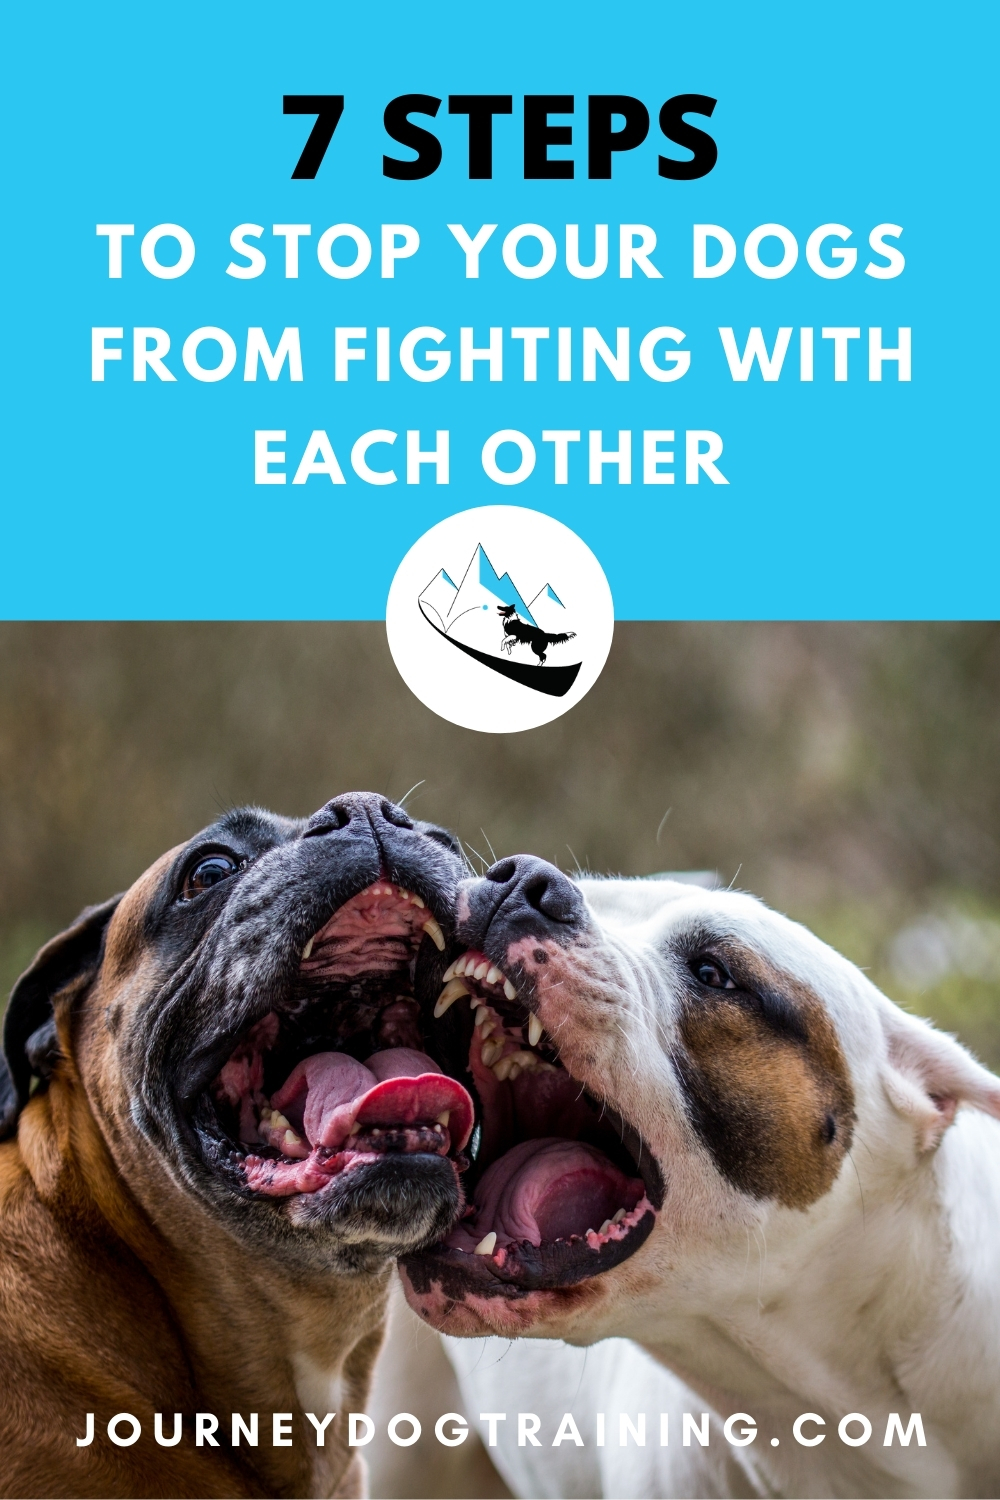 7 steps to stop your dogs from fighting with each other   journeydogtraining.com